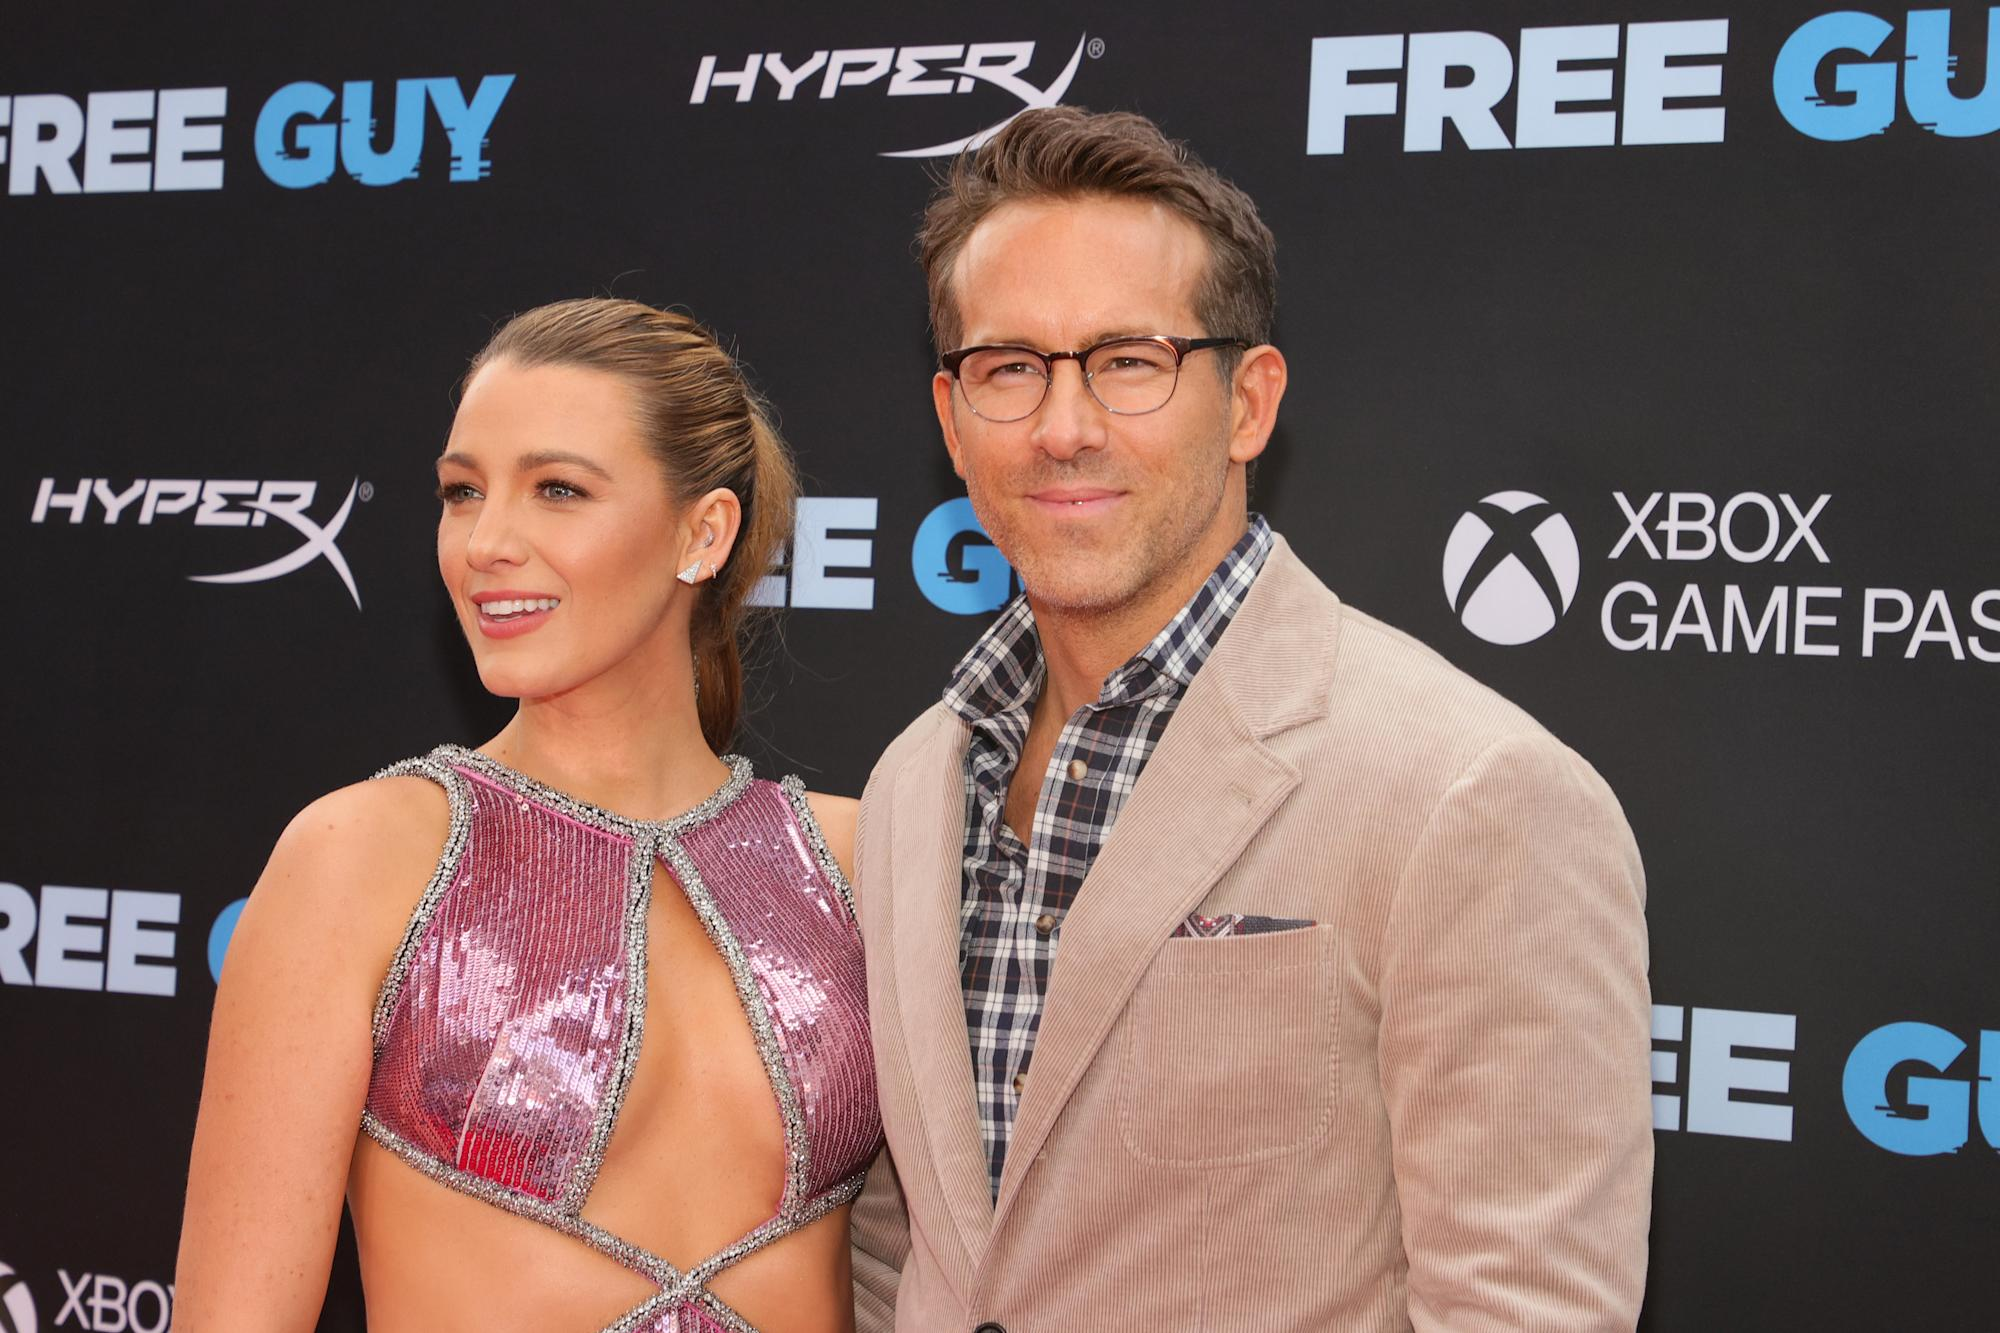 Ryan Reynolds talks being a 'girl dad' with wife Blake Lively: 'I didn't expect to be a dad. I didn't expect to be married.' - Yahoo Life